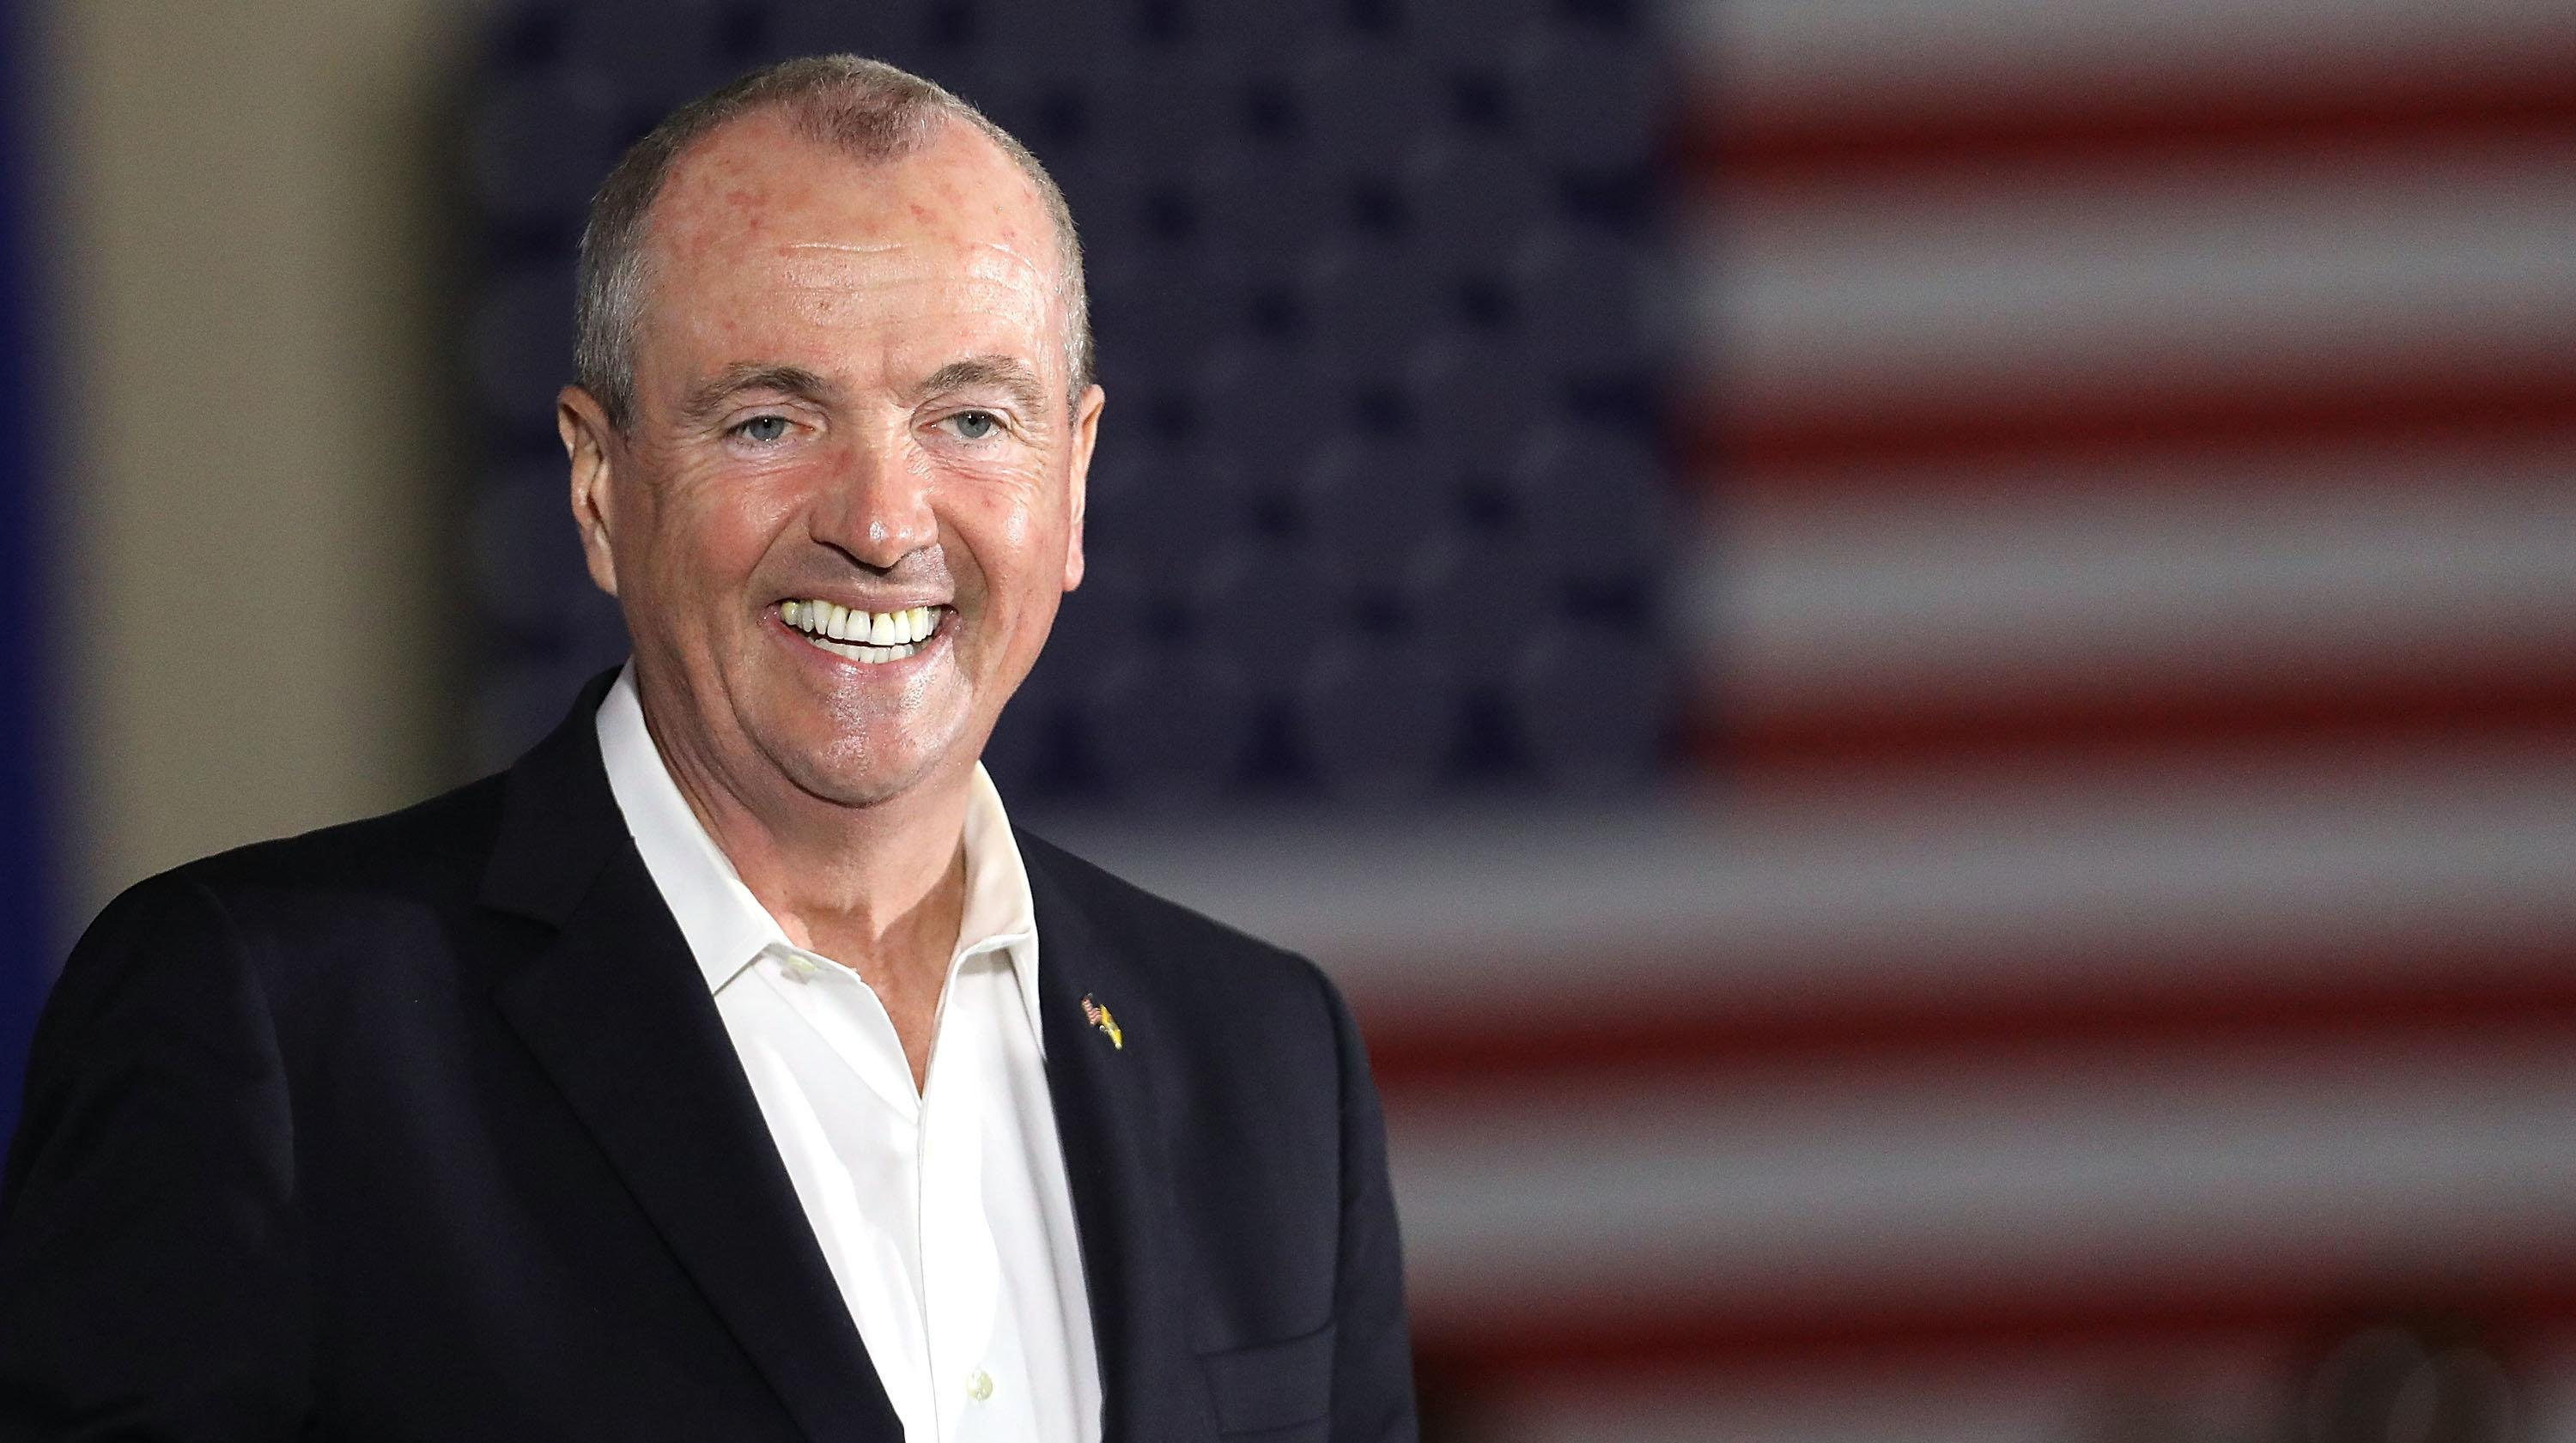 Phil Murphy Cruises To Victory In New Jersey Gubernatorial Race